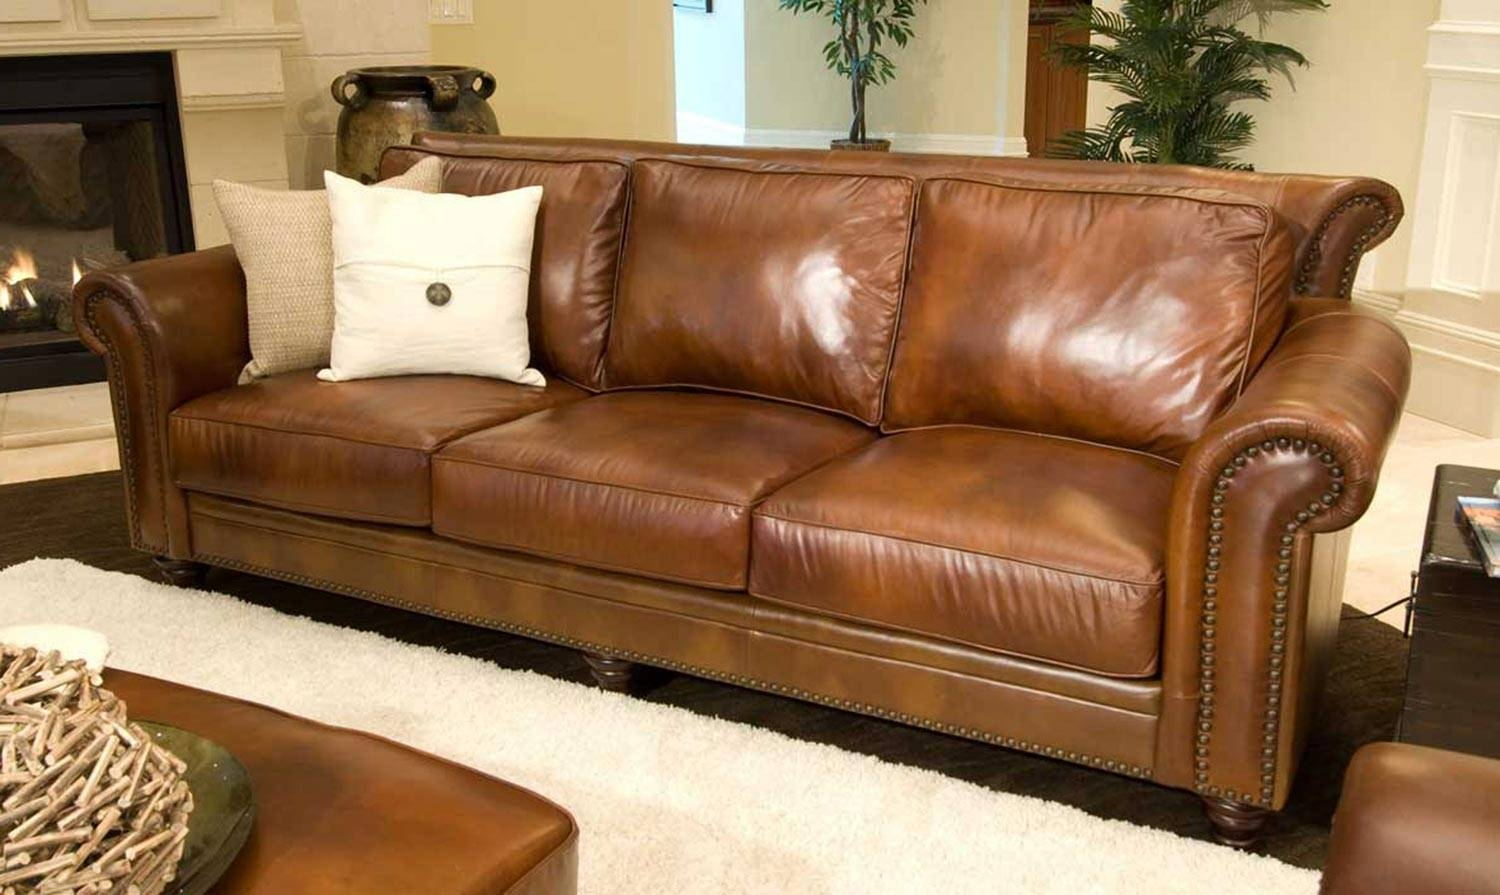 Camel Color Leather Couch #8136 within Camel Color Leather Sofas (Image 2 of 15)